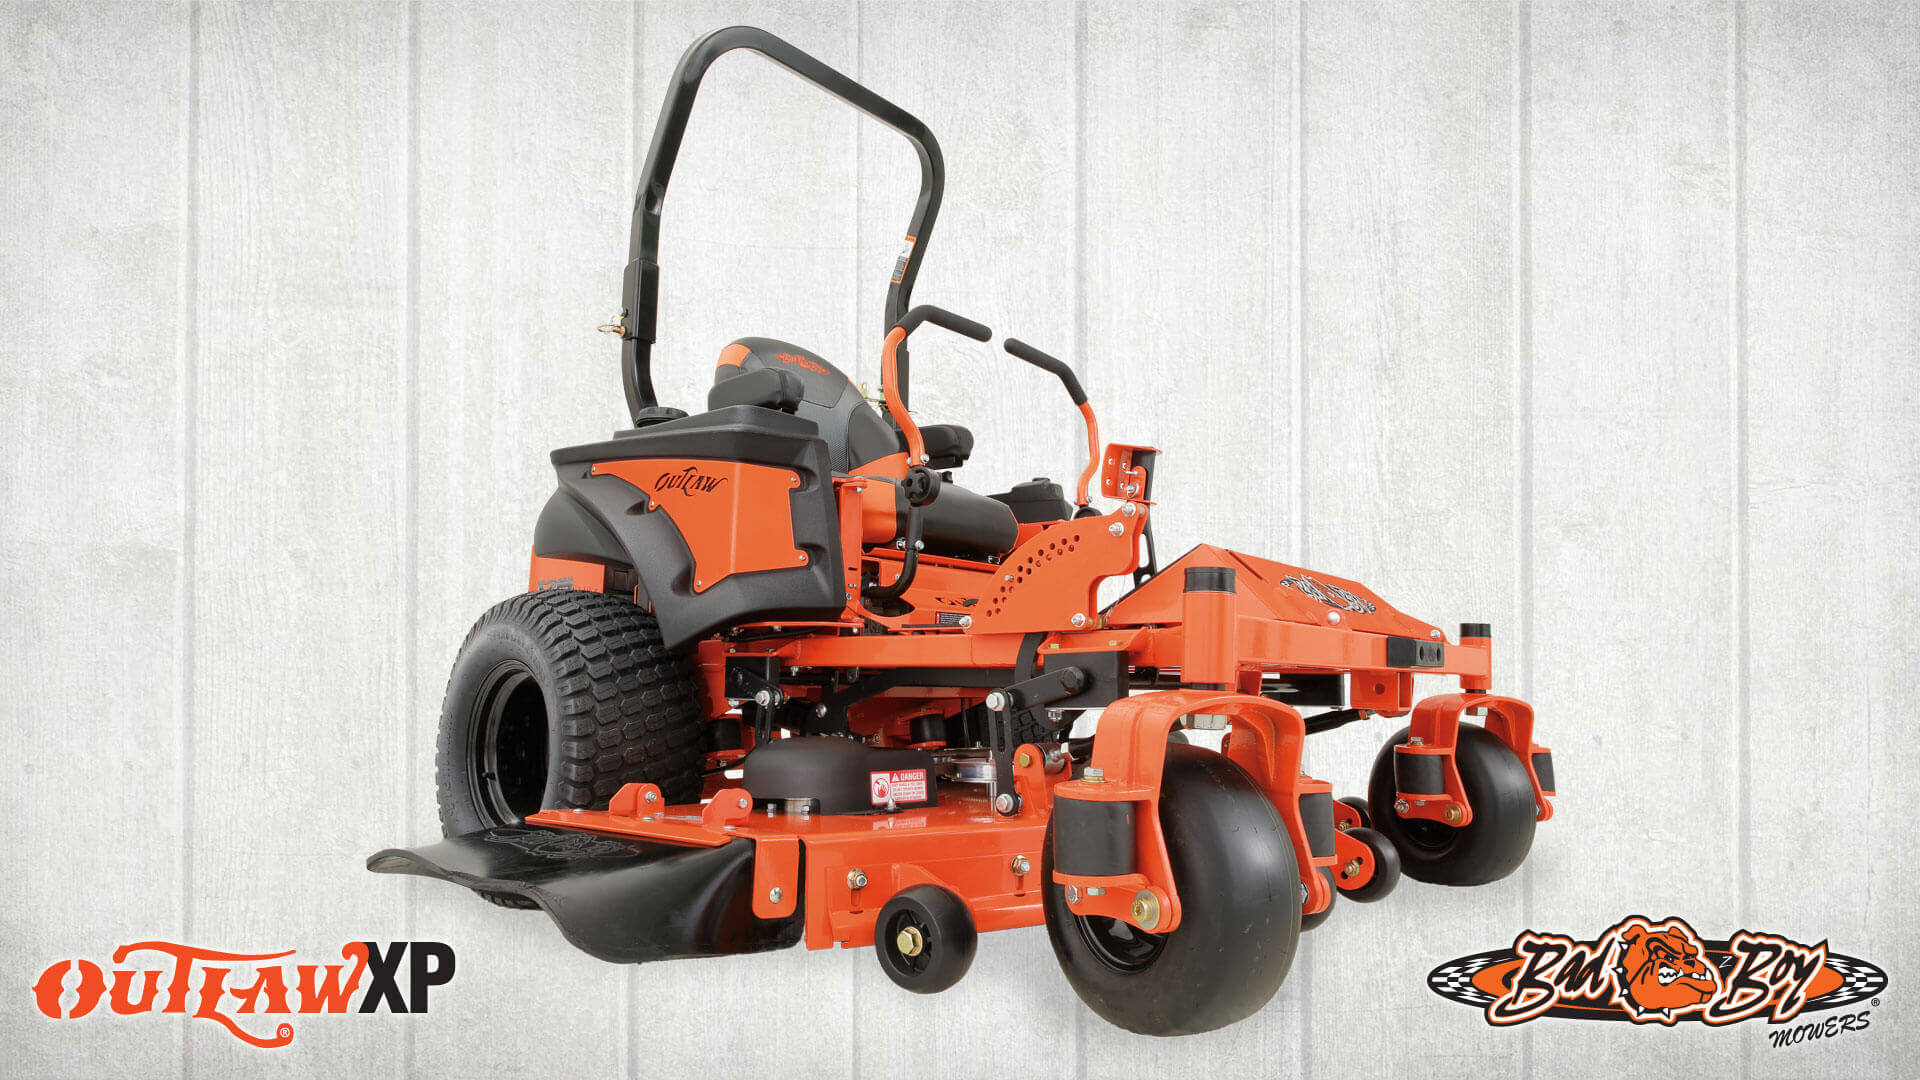 We've thrown everything you've ever asked for into the industry-leading Outlaw XP, along with several innovations that didn't even exist on zero-turn mowers until now.